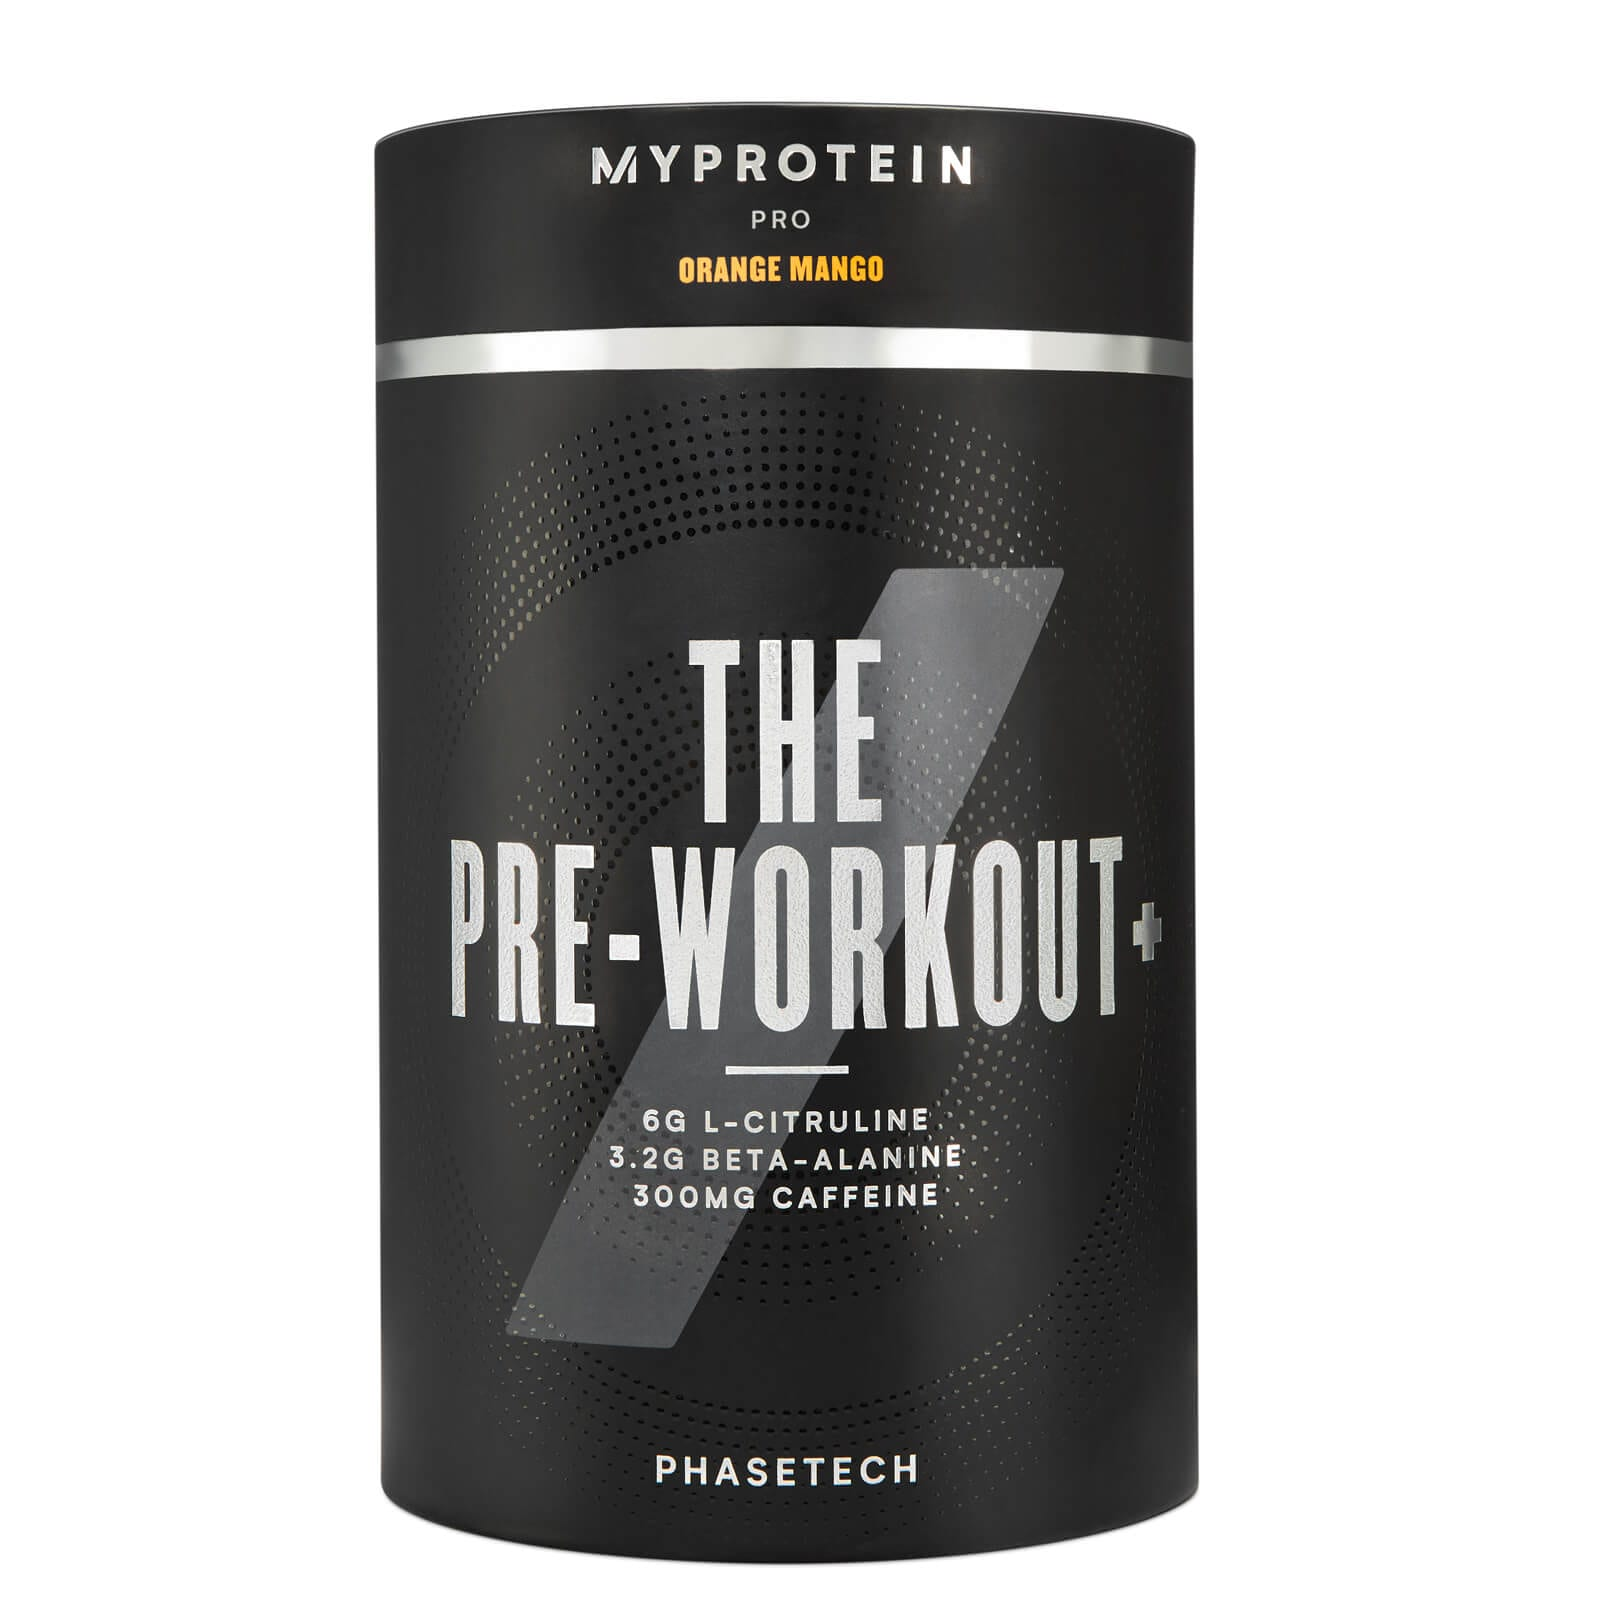 THE pre-workout+ phasetech